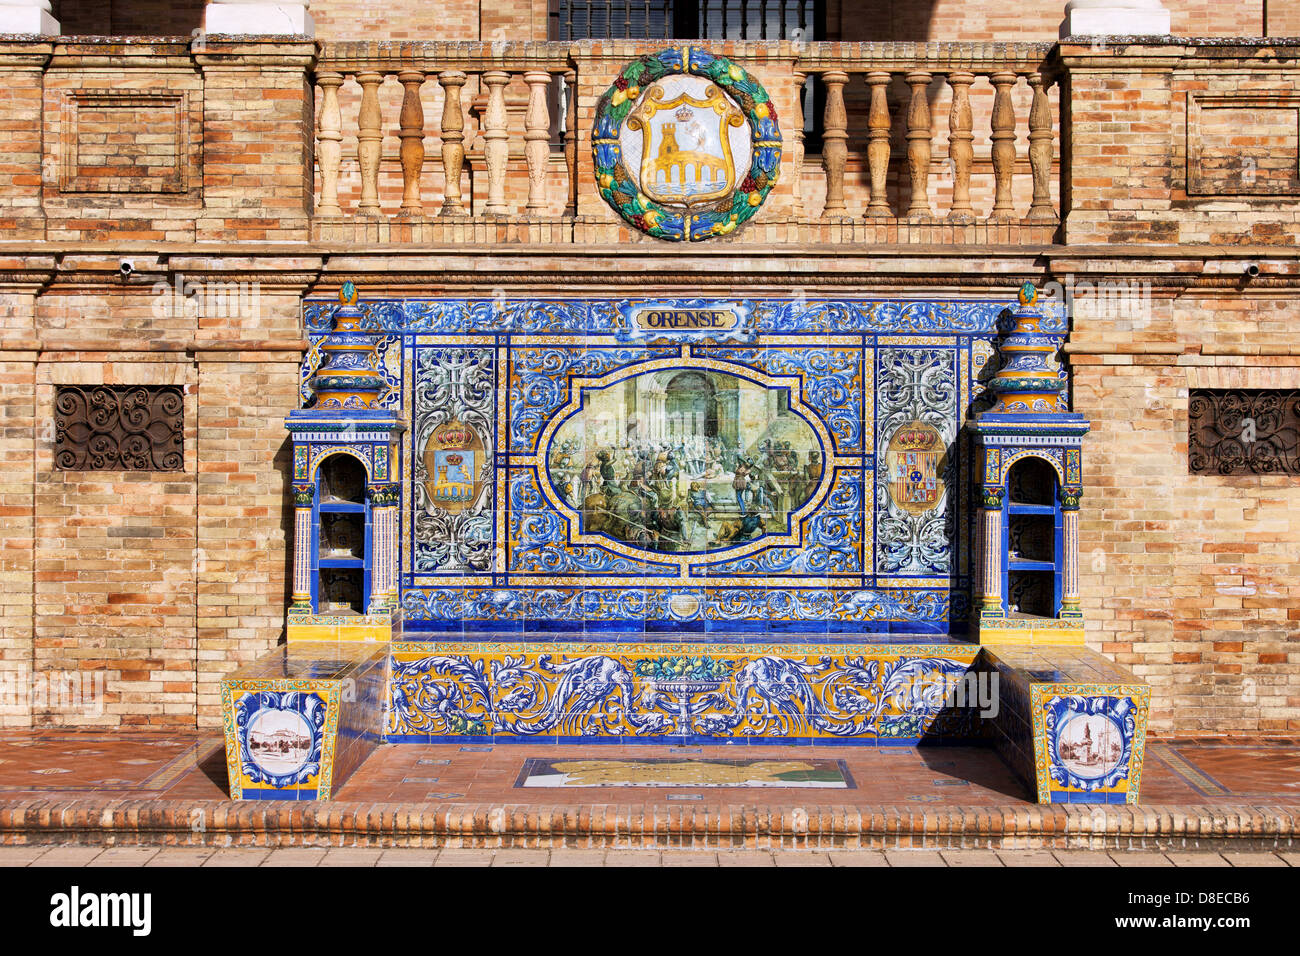 Bench with Azulejos Tiles on the Plaza de Espana in Seville, Spain. - Stock Image